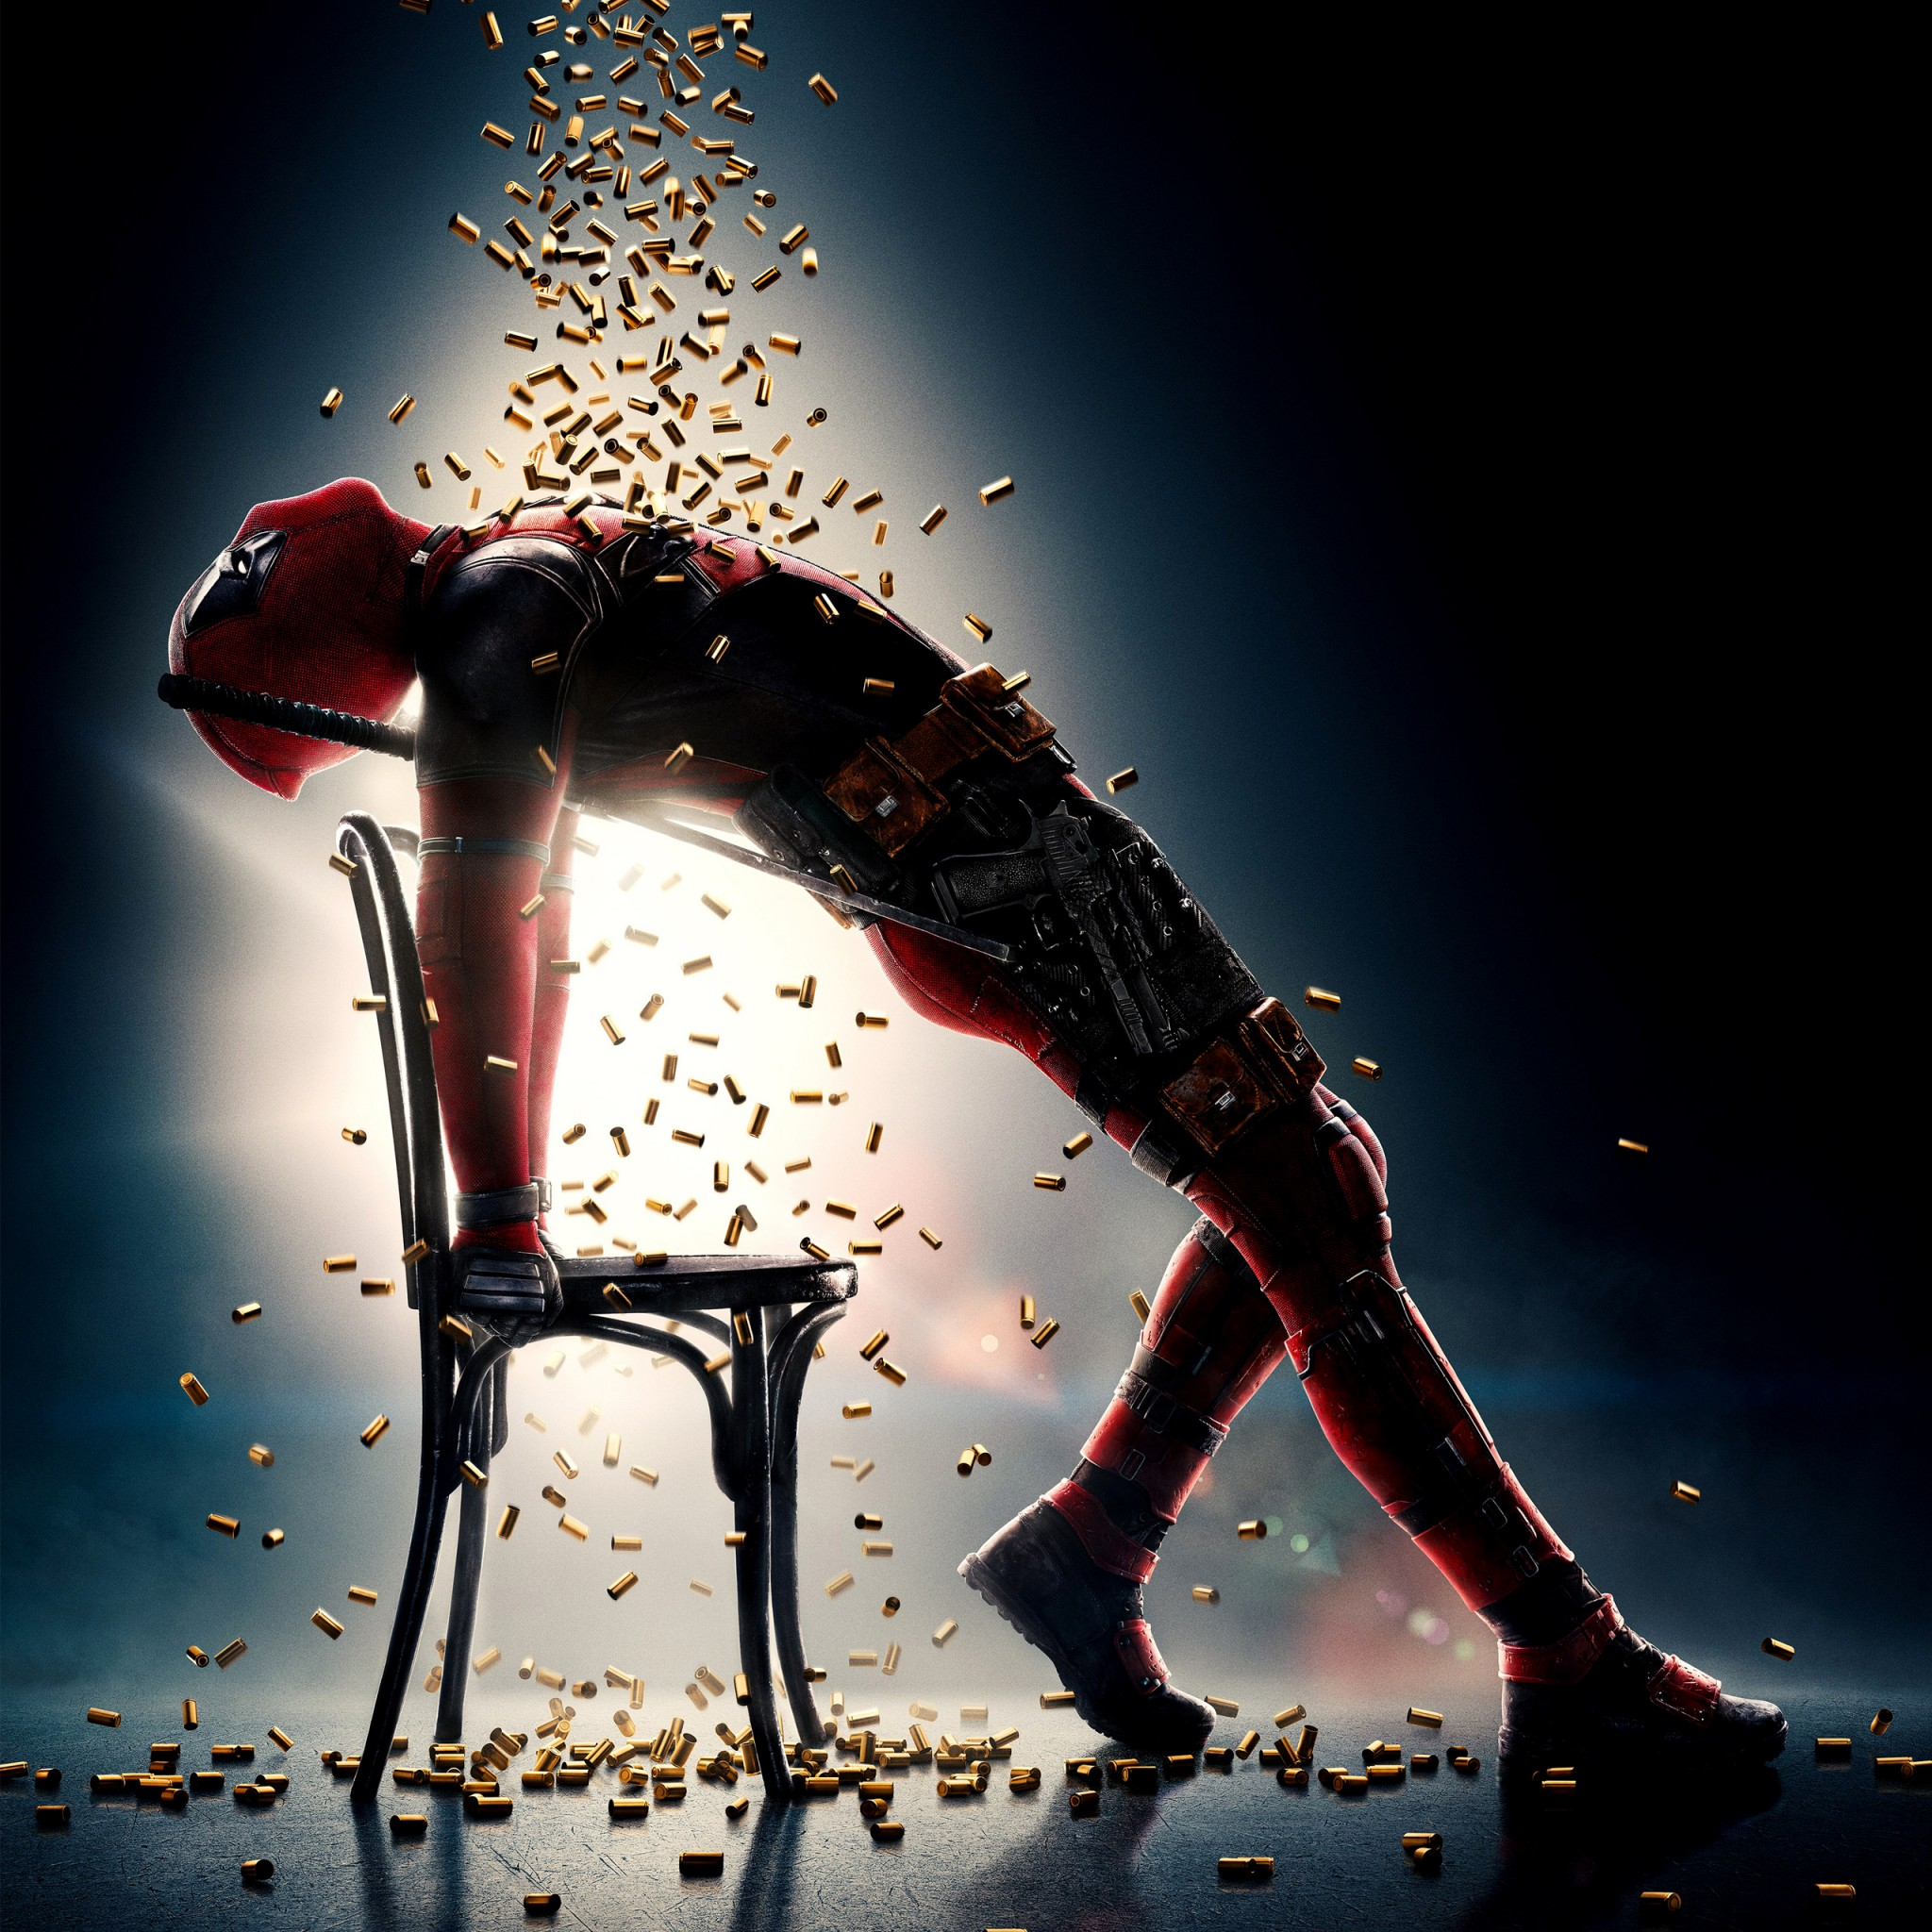 Hd Wallpapers For Widescreen Monitor Deadpool 2 Hd Wallpapers Hd Wallpapers Id 22962